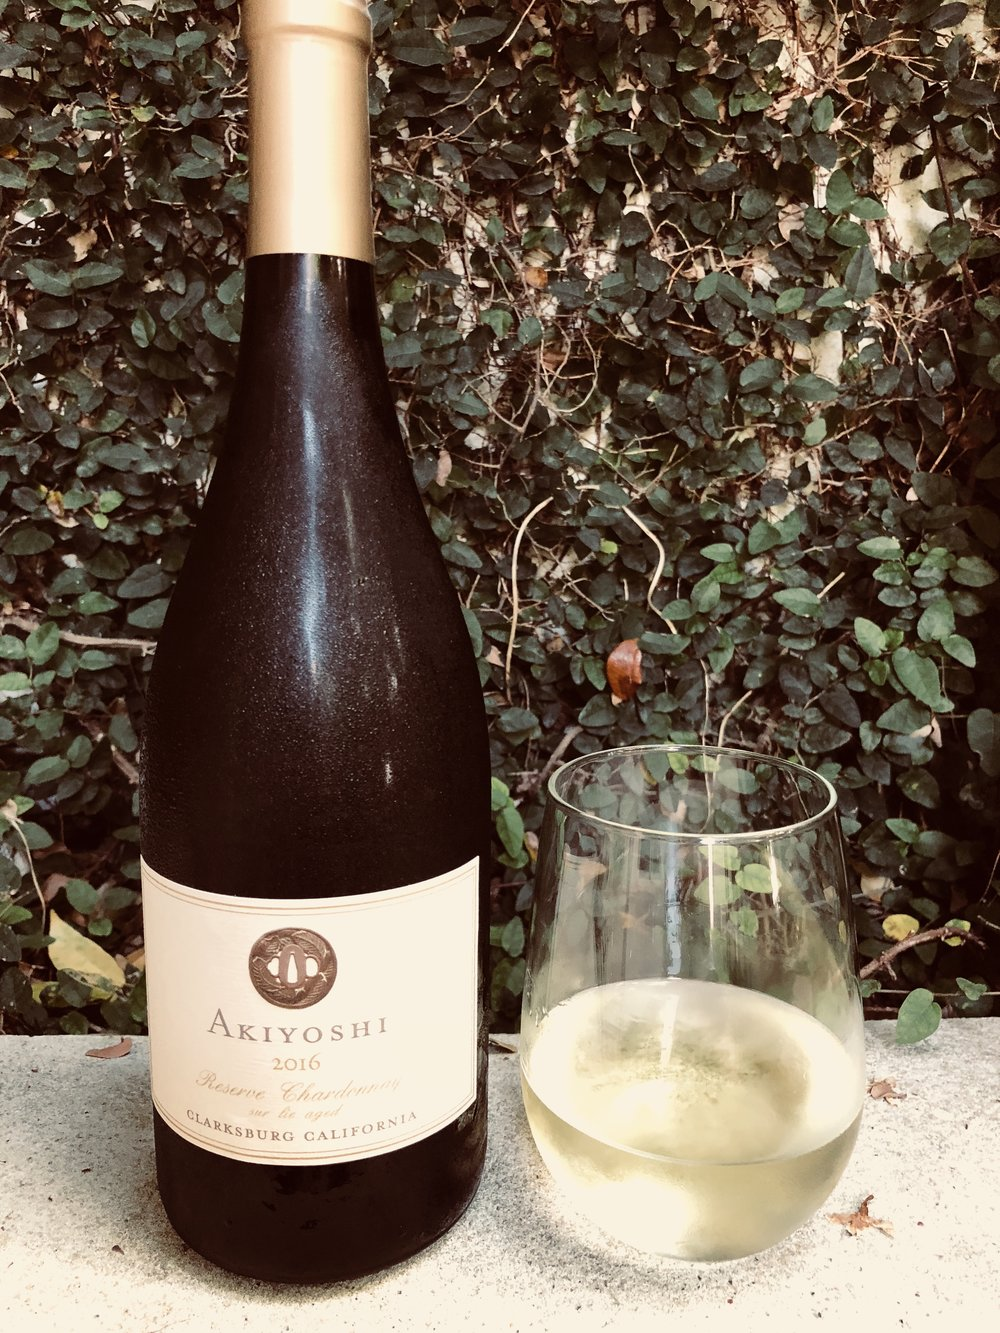 - David Akiyoshi Reserve Chardonnay Clarksburg 2016. We are happy the Angels rescued this vineyard from being ripped up and gave Akiyoshi the funding to focus on quality over quantity. Very fresh combination of white peach, citrus and vanilla, nicely malolactic,lightly-oaked sur lie aged 10 months, subtle honey sweetness at finish. Paired well with our Shrimp Curry. Again, message us if you'd like the recipe. We will buy again - great value!List $20 Angel Price $12